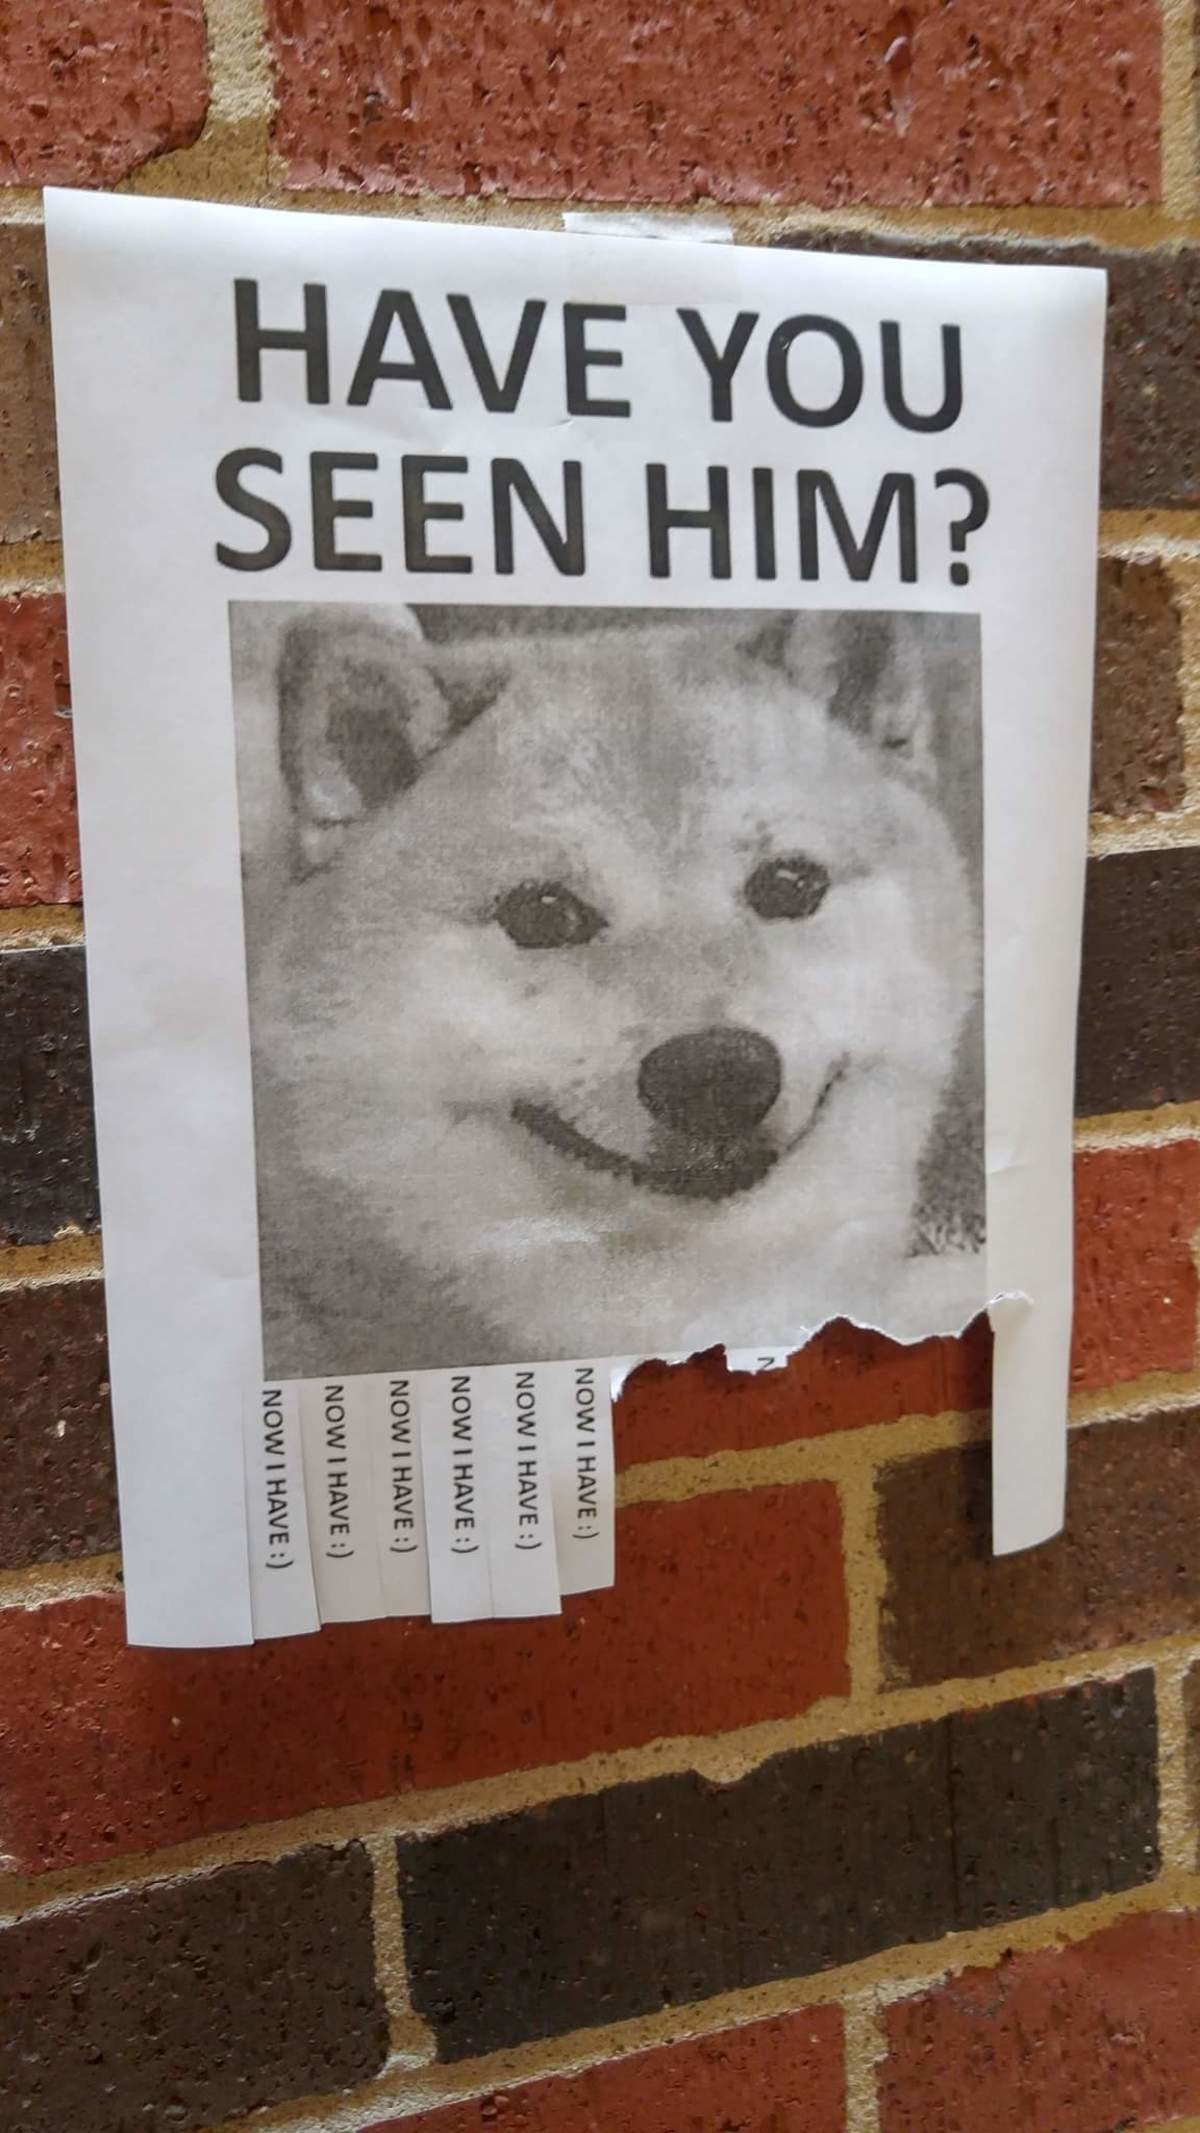 Have you seen him?. .. now i have